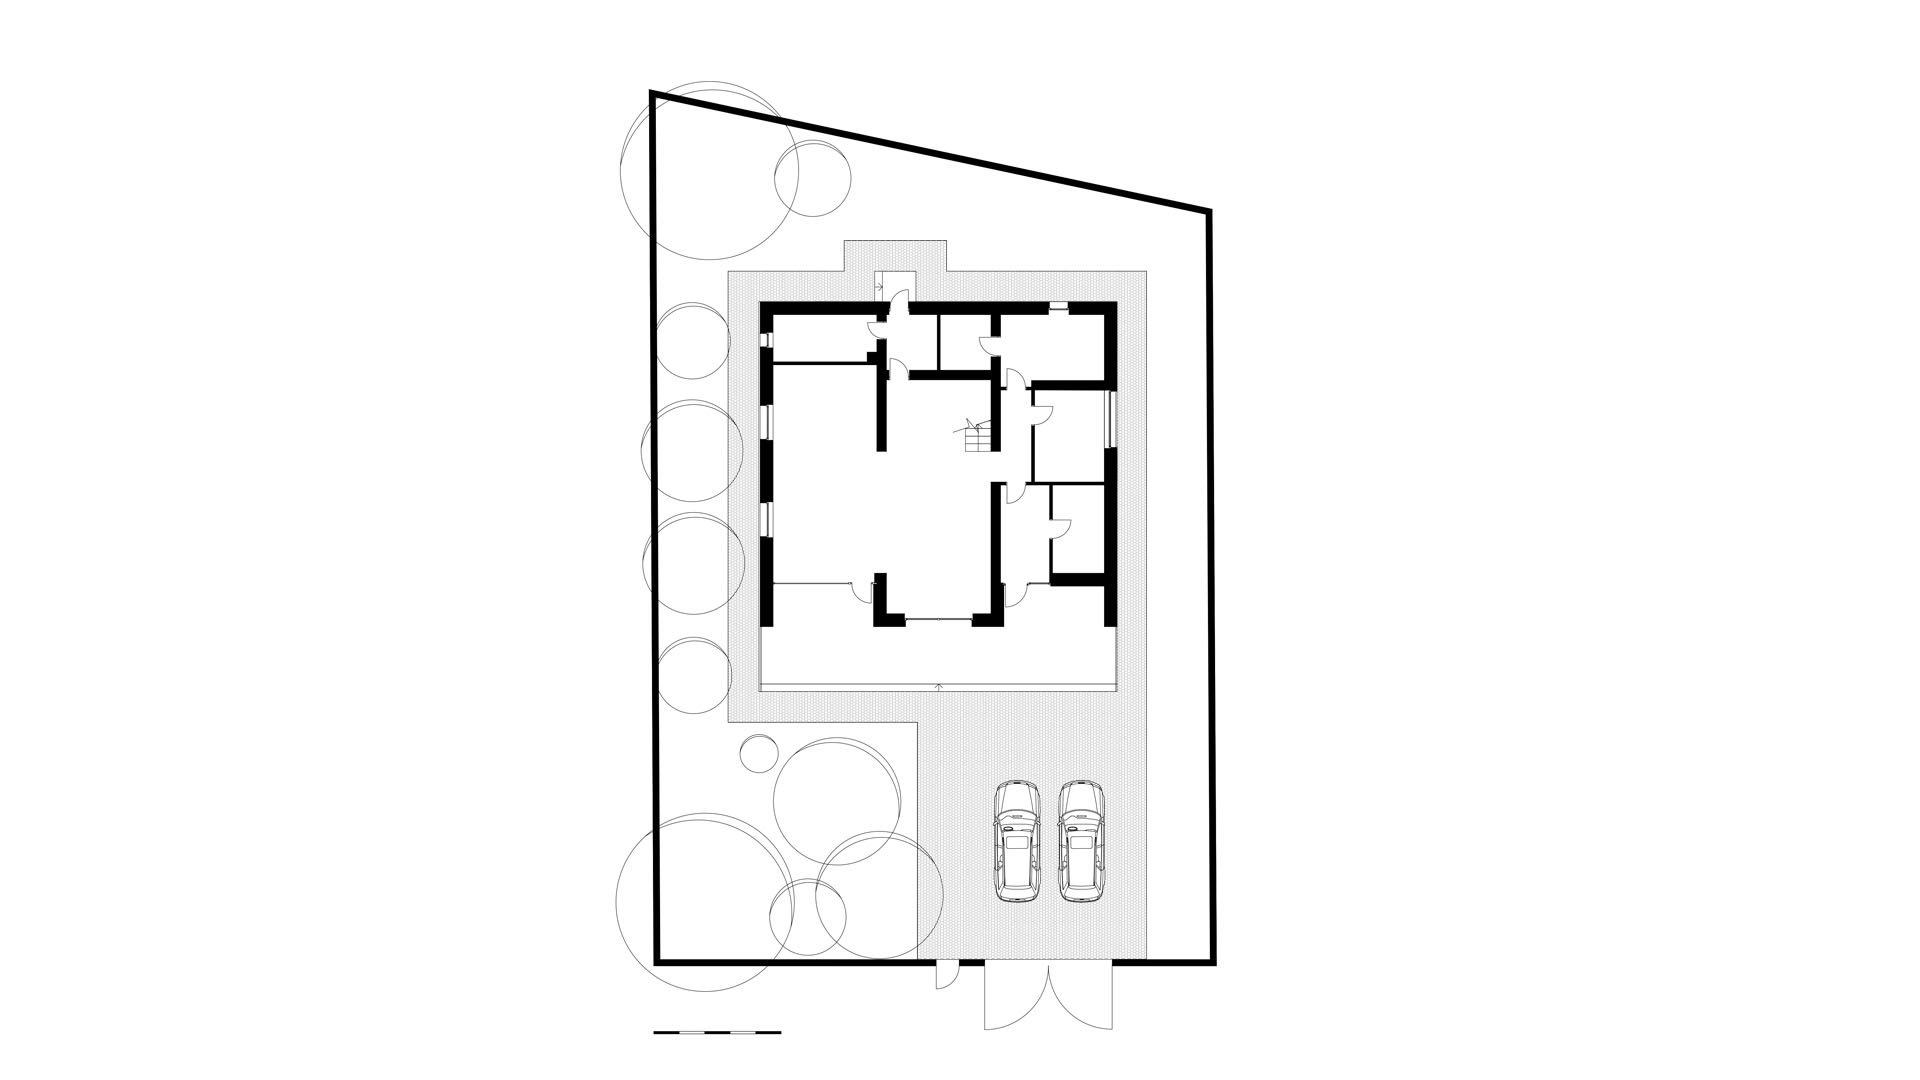 the plan of the house in Rostov